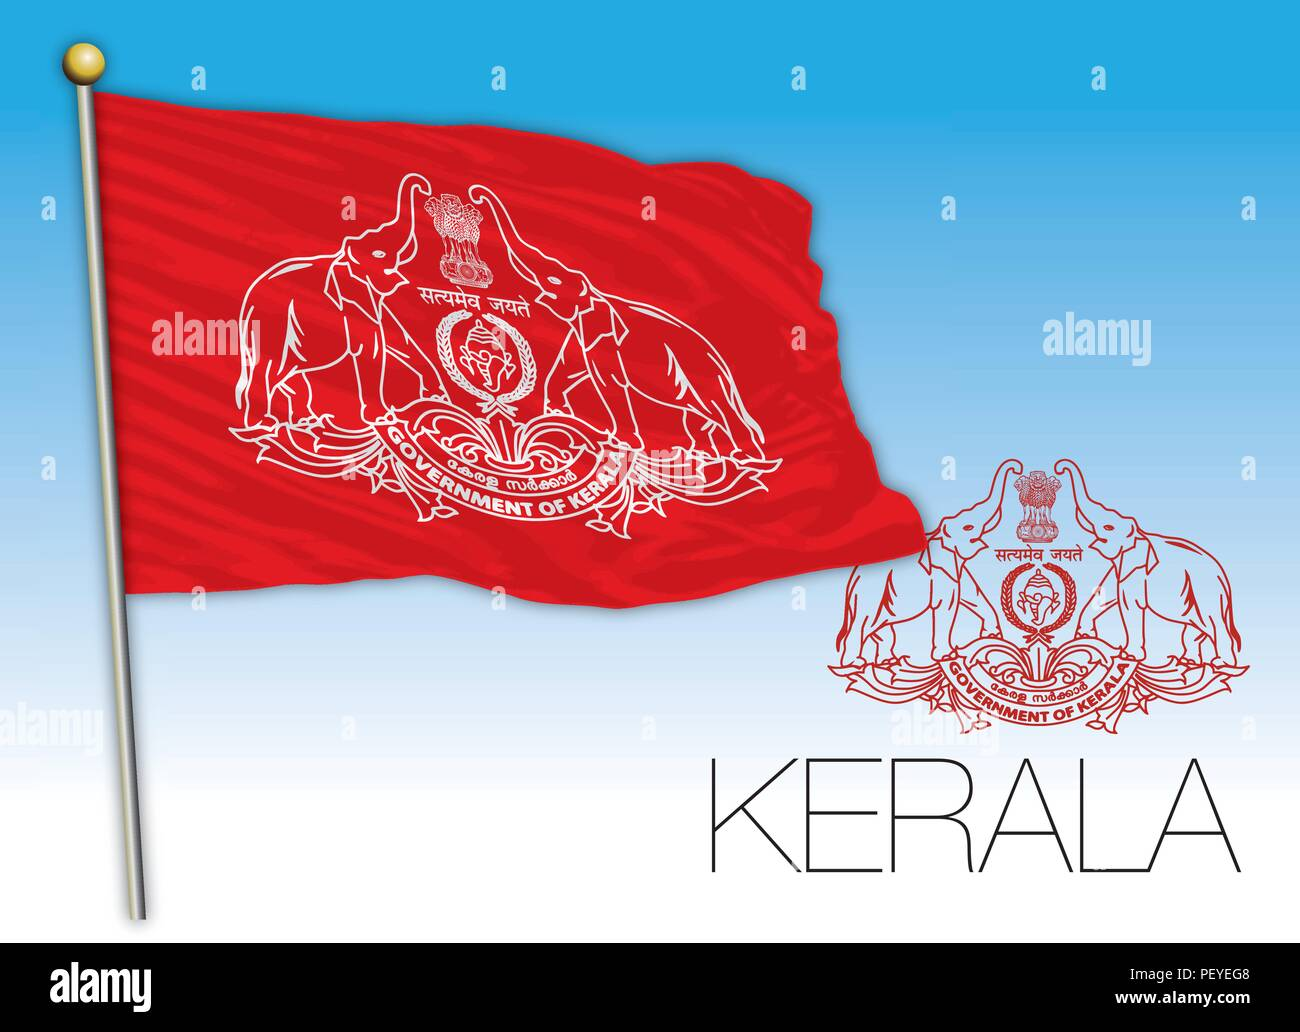 Kerala regional flag, India - Stock Vector